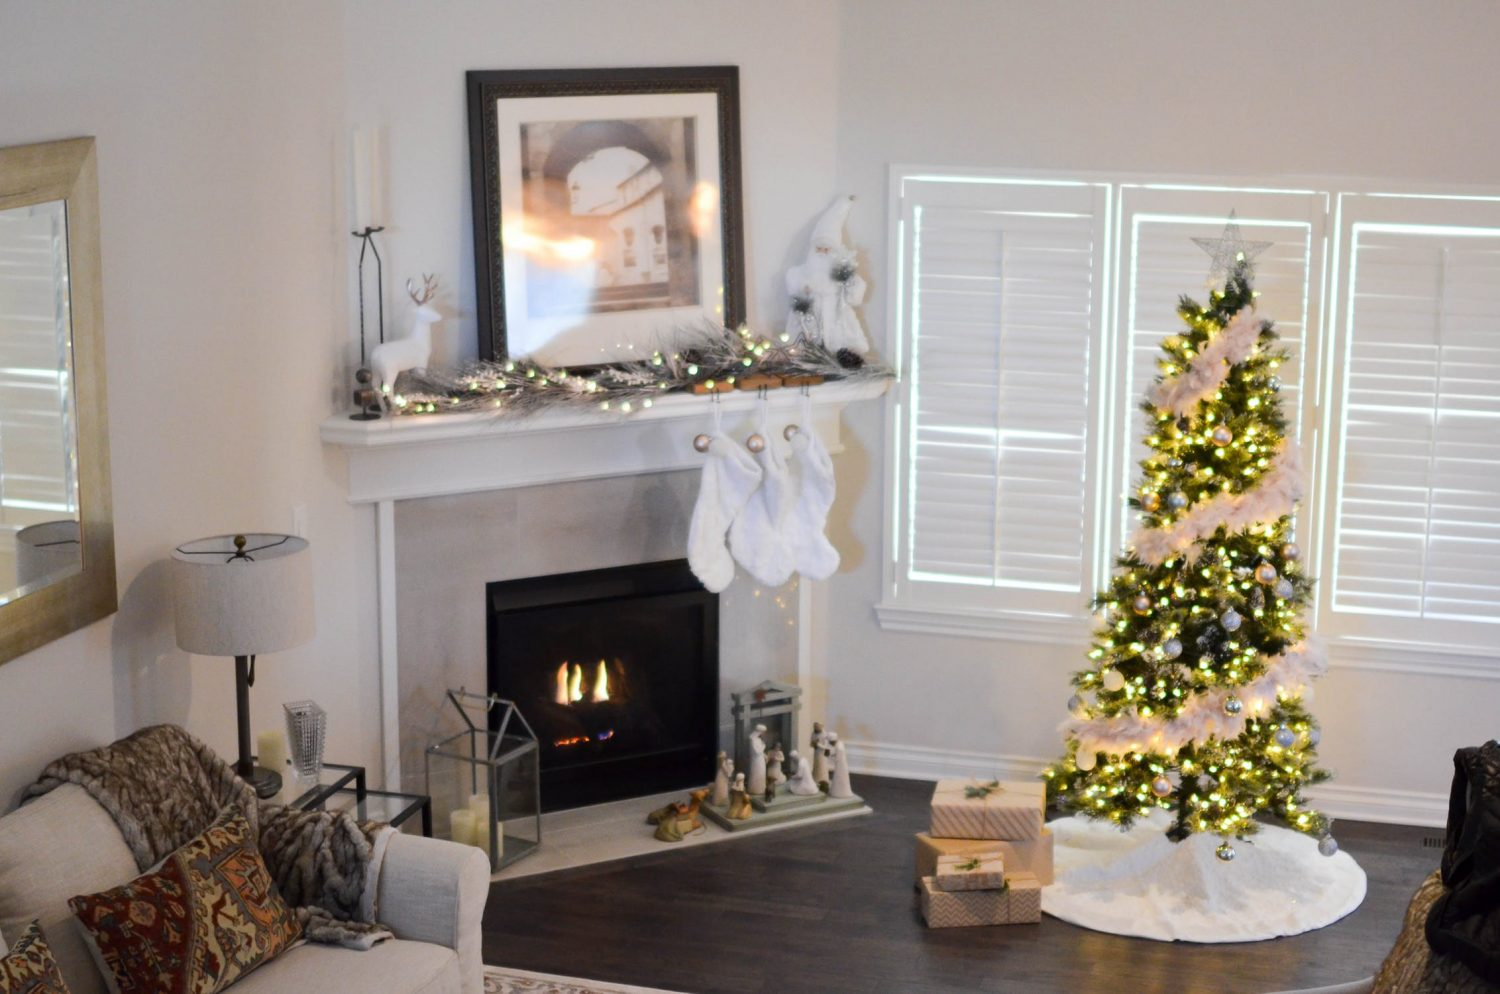 15  WAYS TO MAKE MEMORIES WITH YOUR FAMILY THIS CHRISTMAS